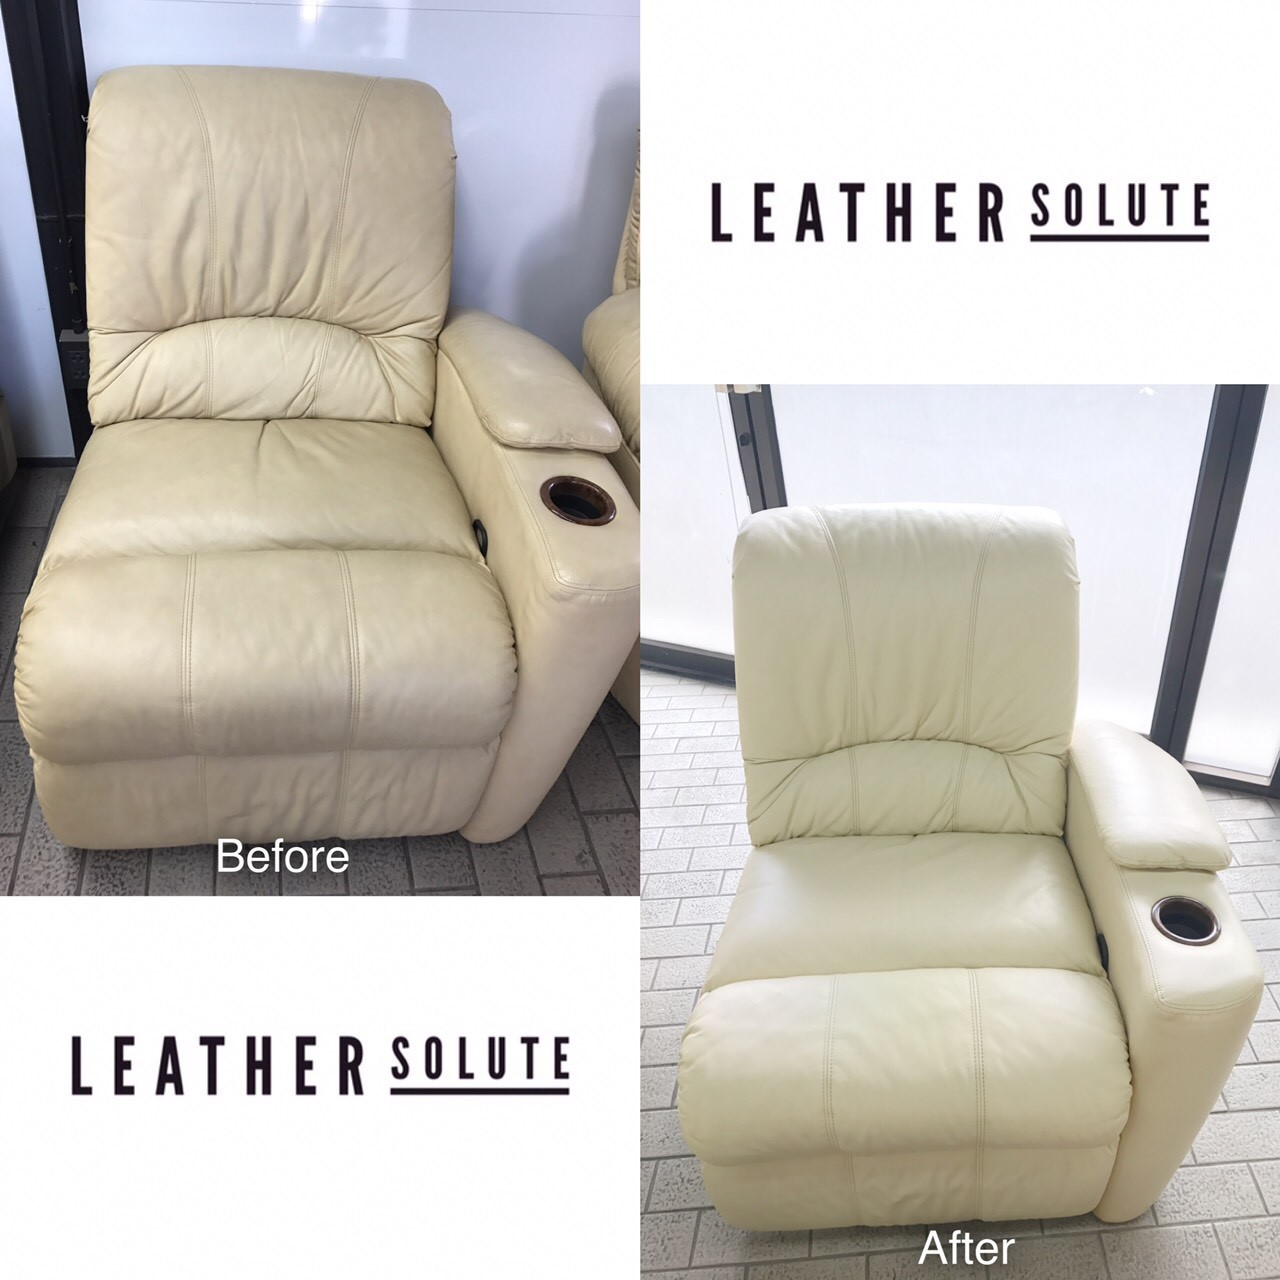 //www.leathersolute.co.th/wp-content/uploads/2018/12/Cleaning-furniture_๑๘๑๒๓๐_0010.jpg